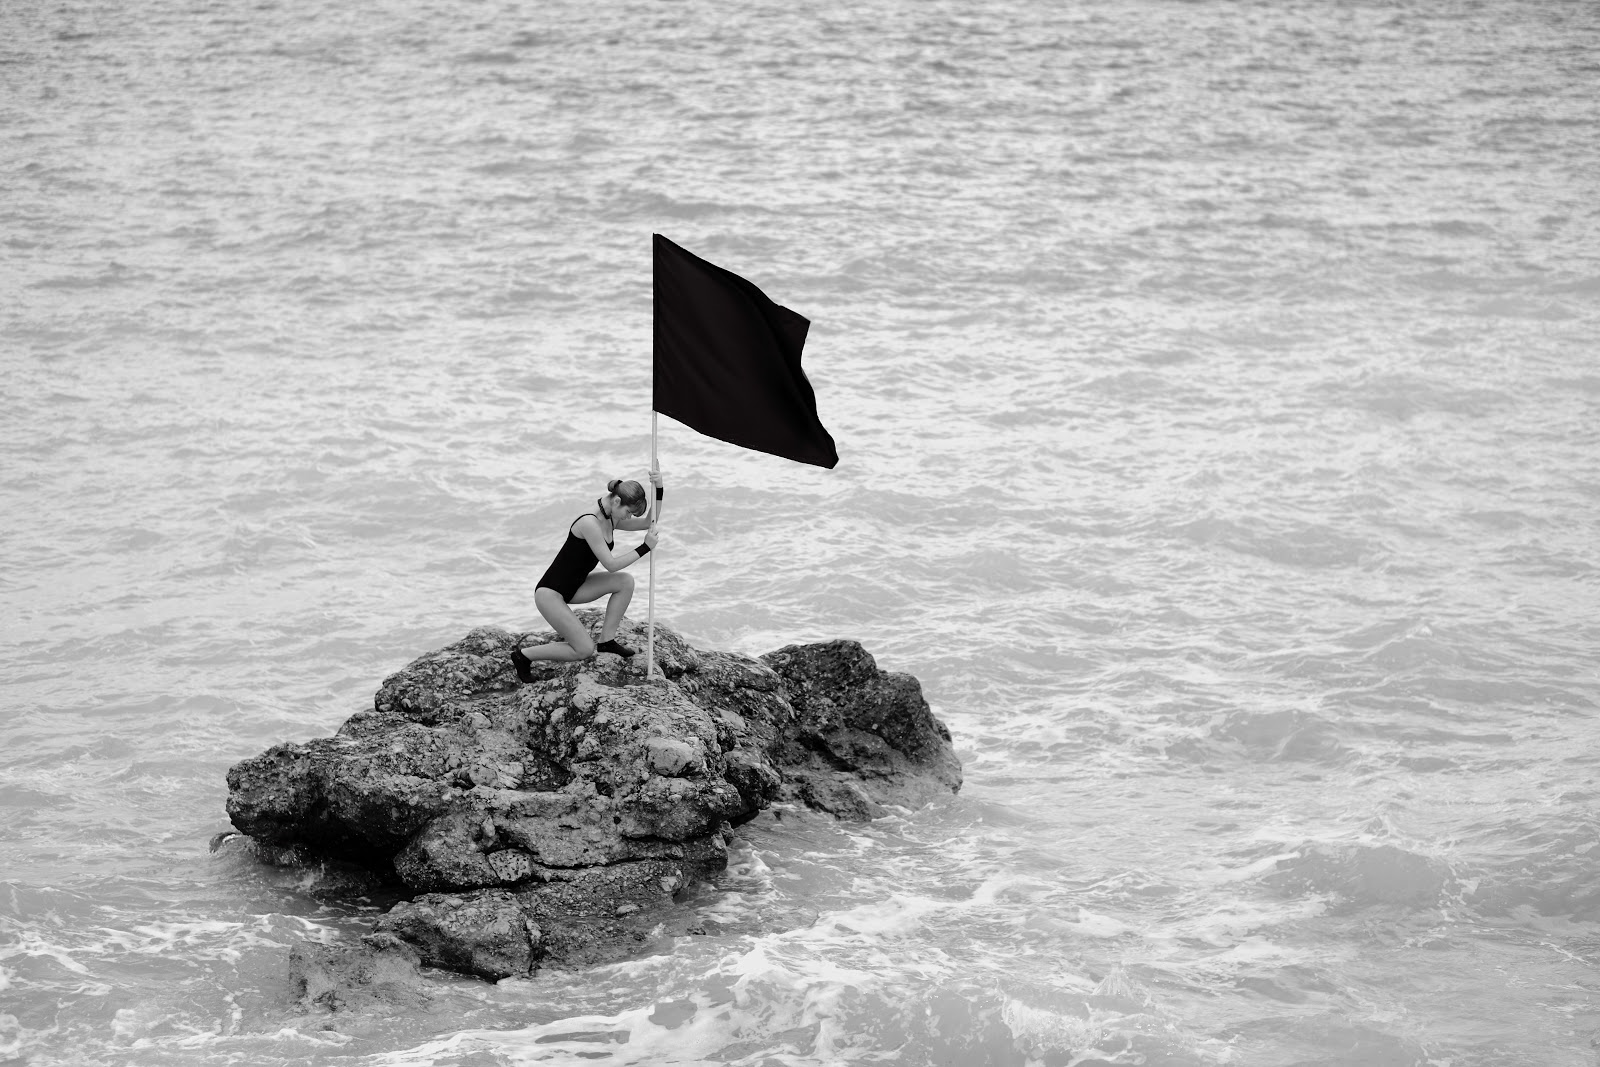 Black and white photo of a woman planting a black flag on a rock in the middle of the ocean.